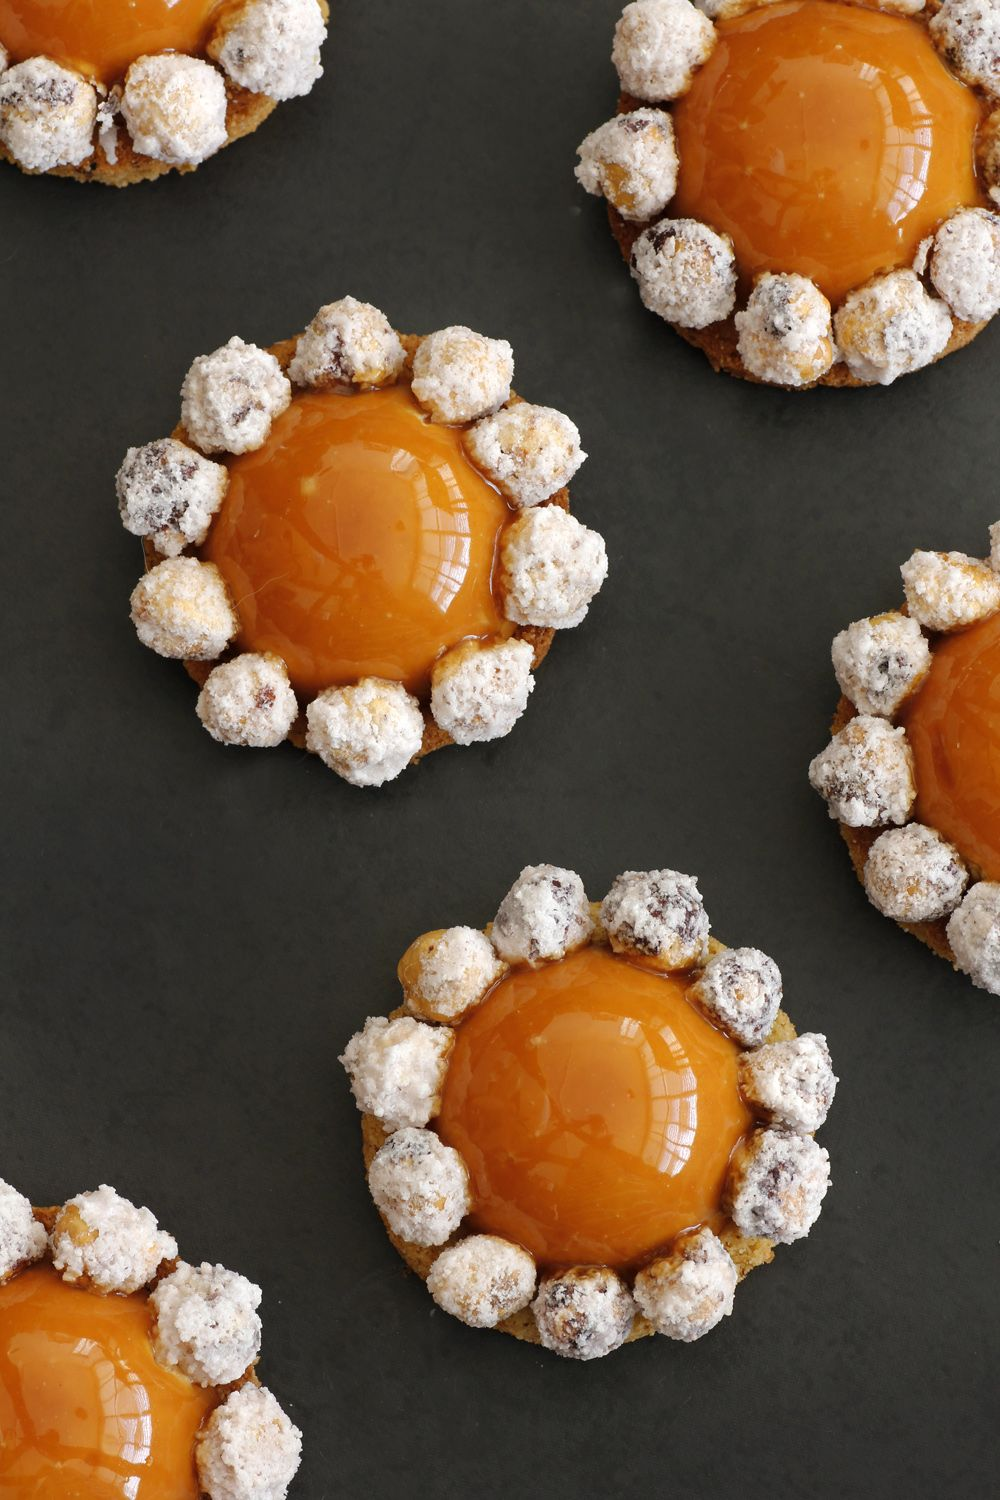 Caramel Mousse Domes with Candied Hazelnuts